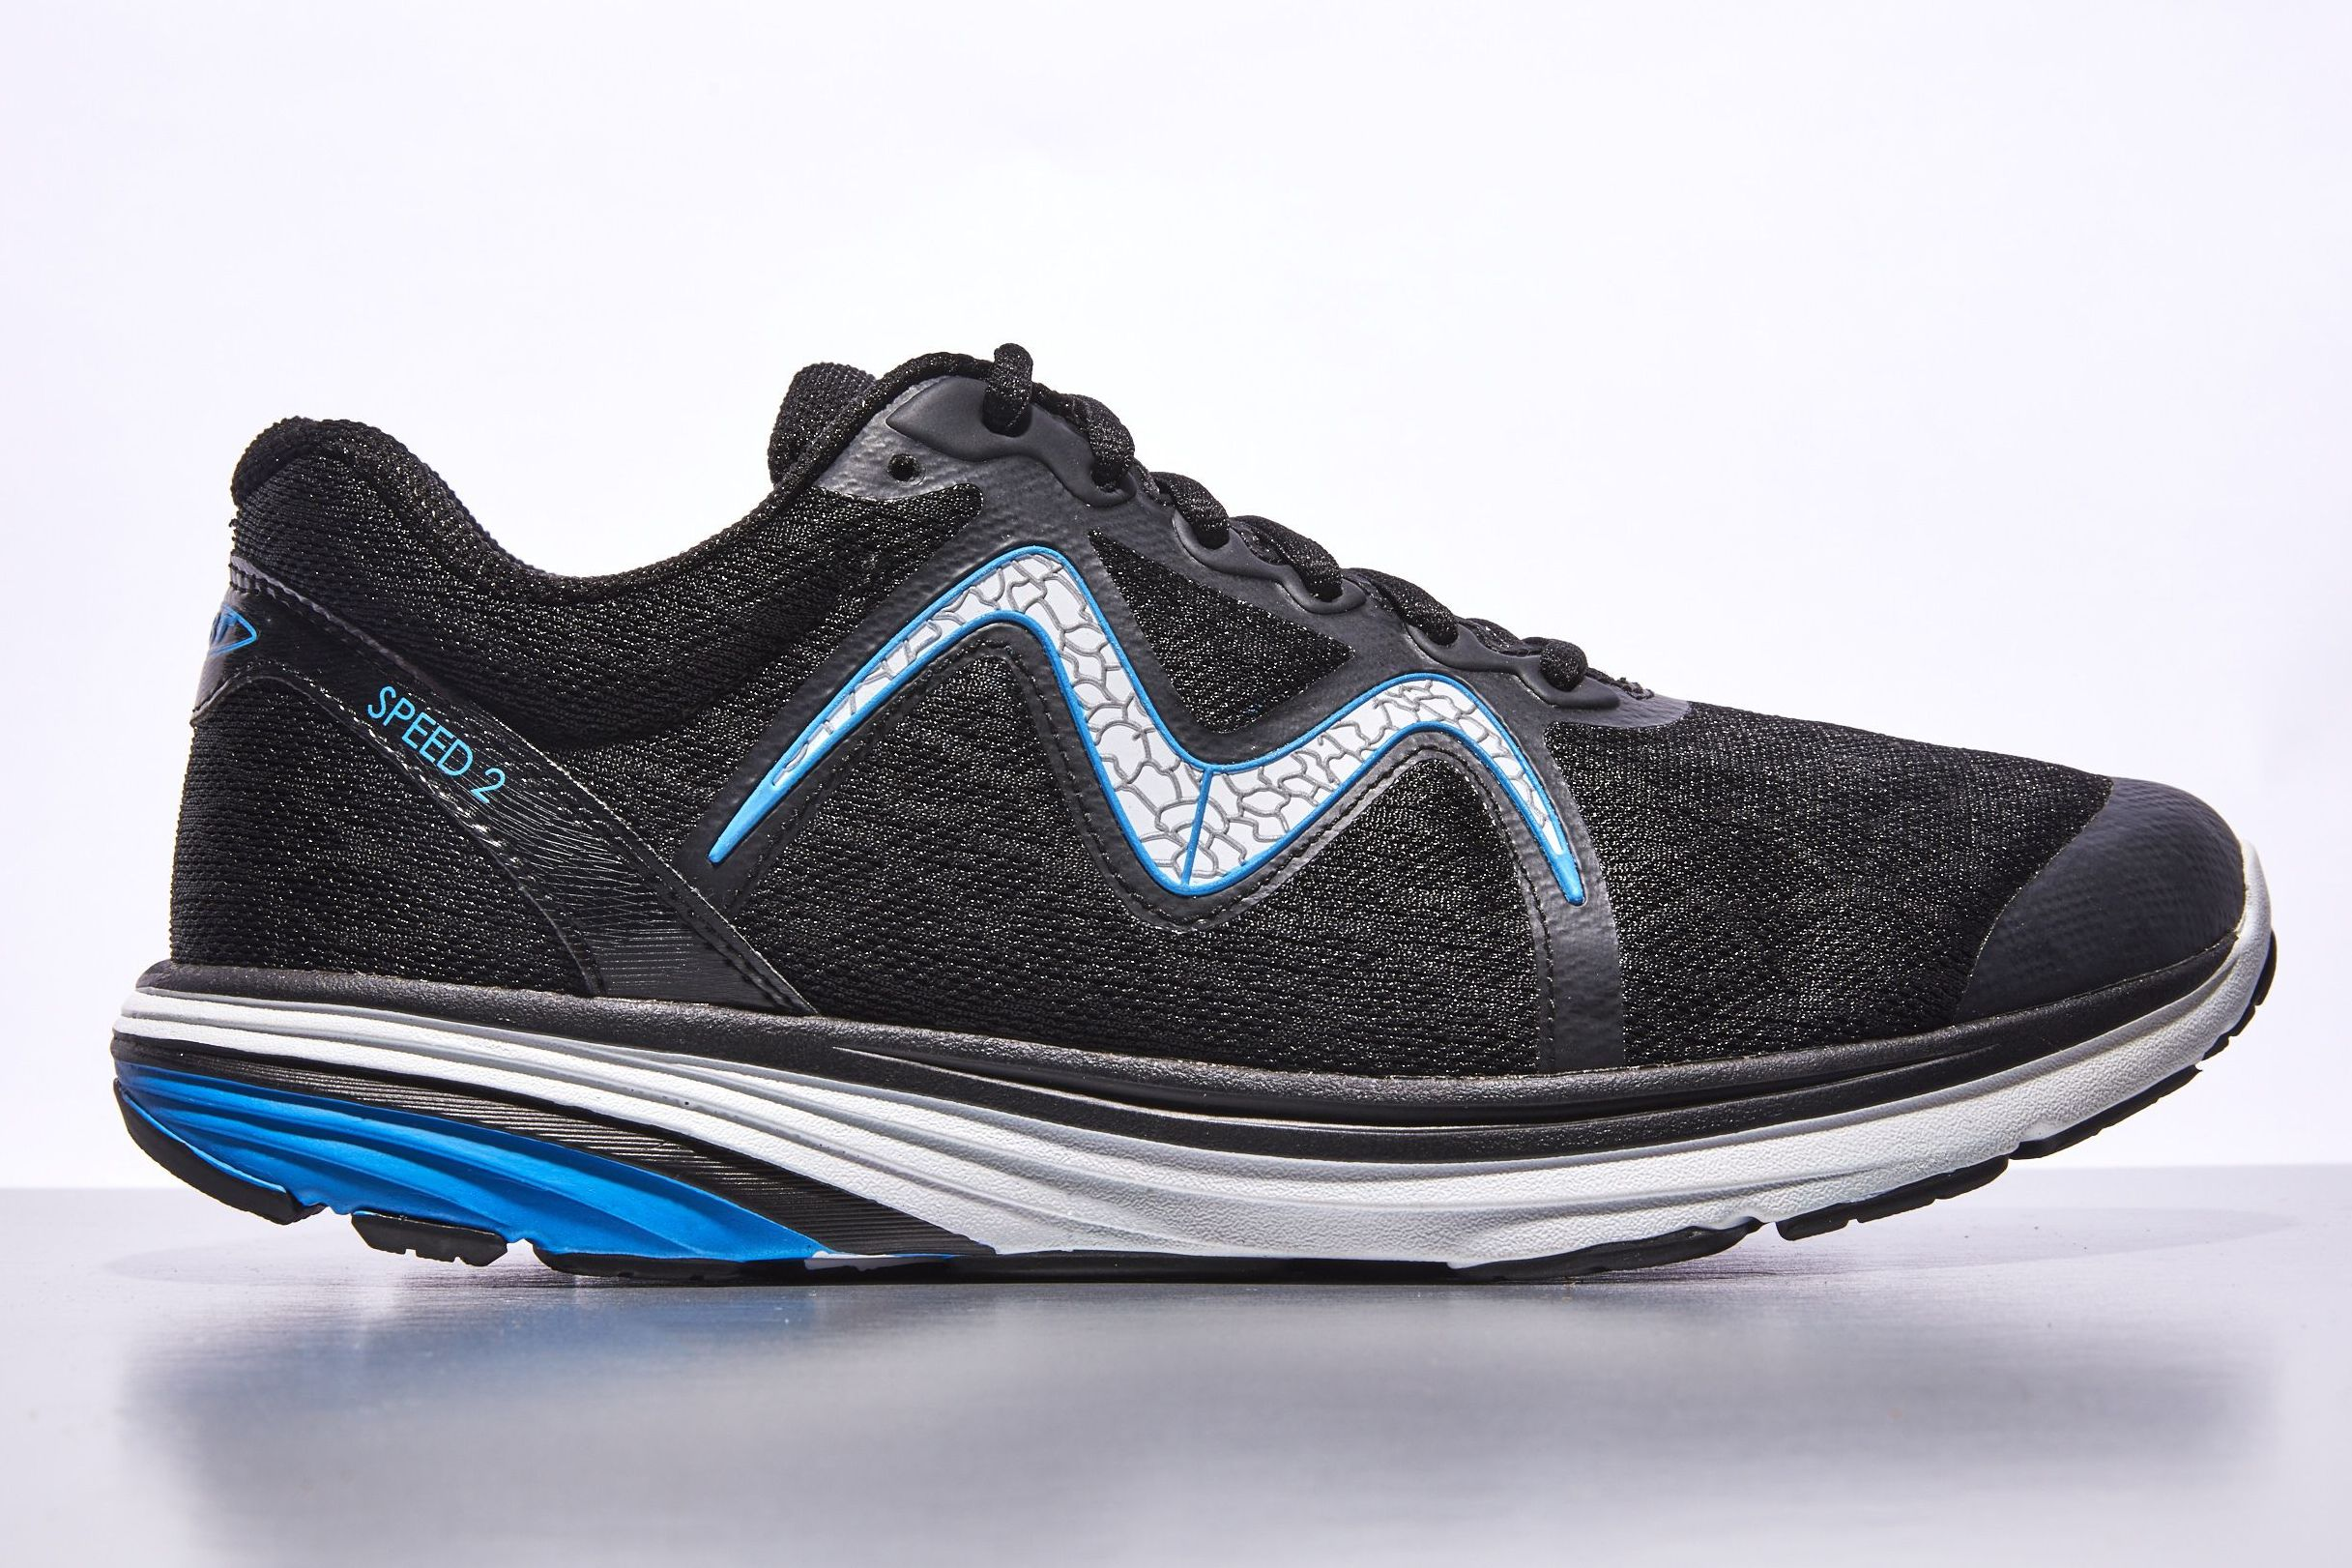 305a1368a0a8 Best Cushioned Running Shoes 2019 - Most Comfortable Sneakers